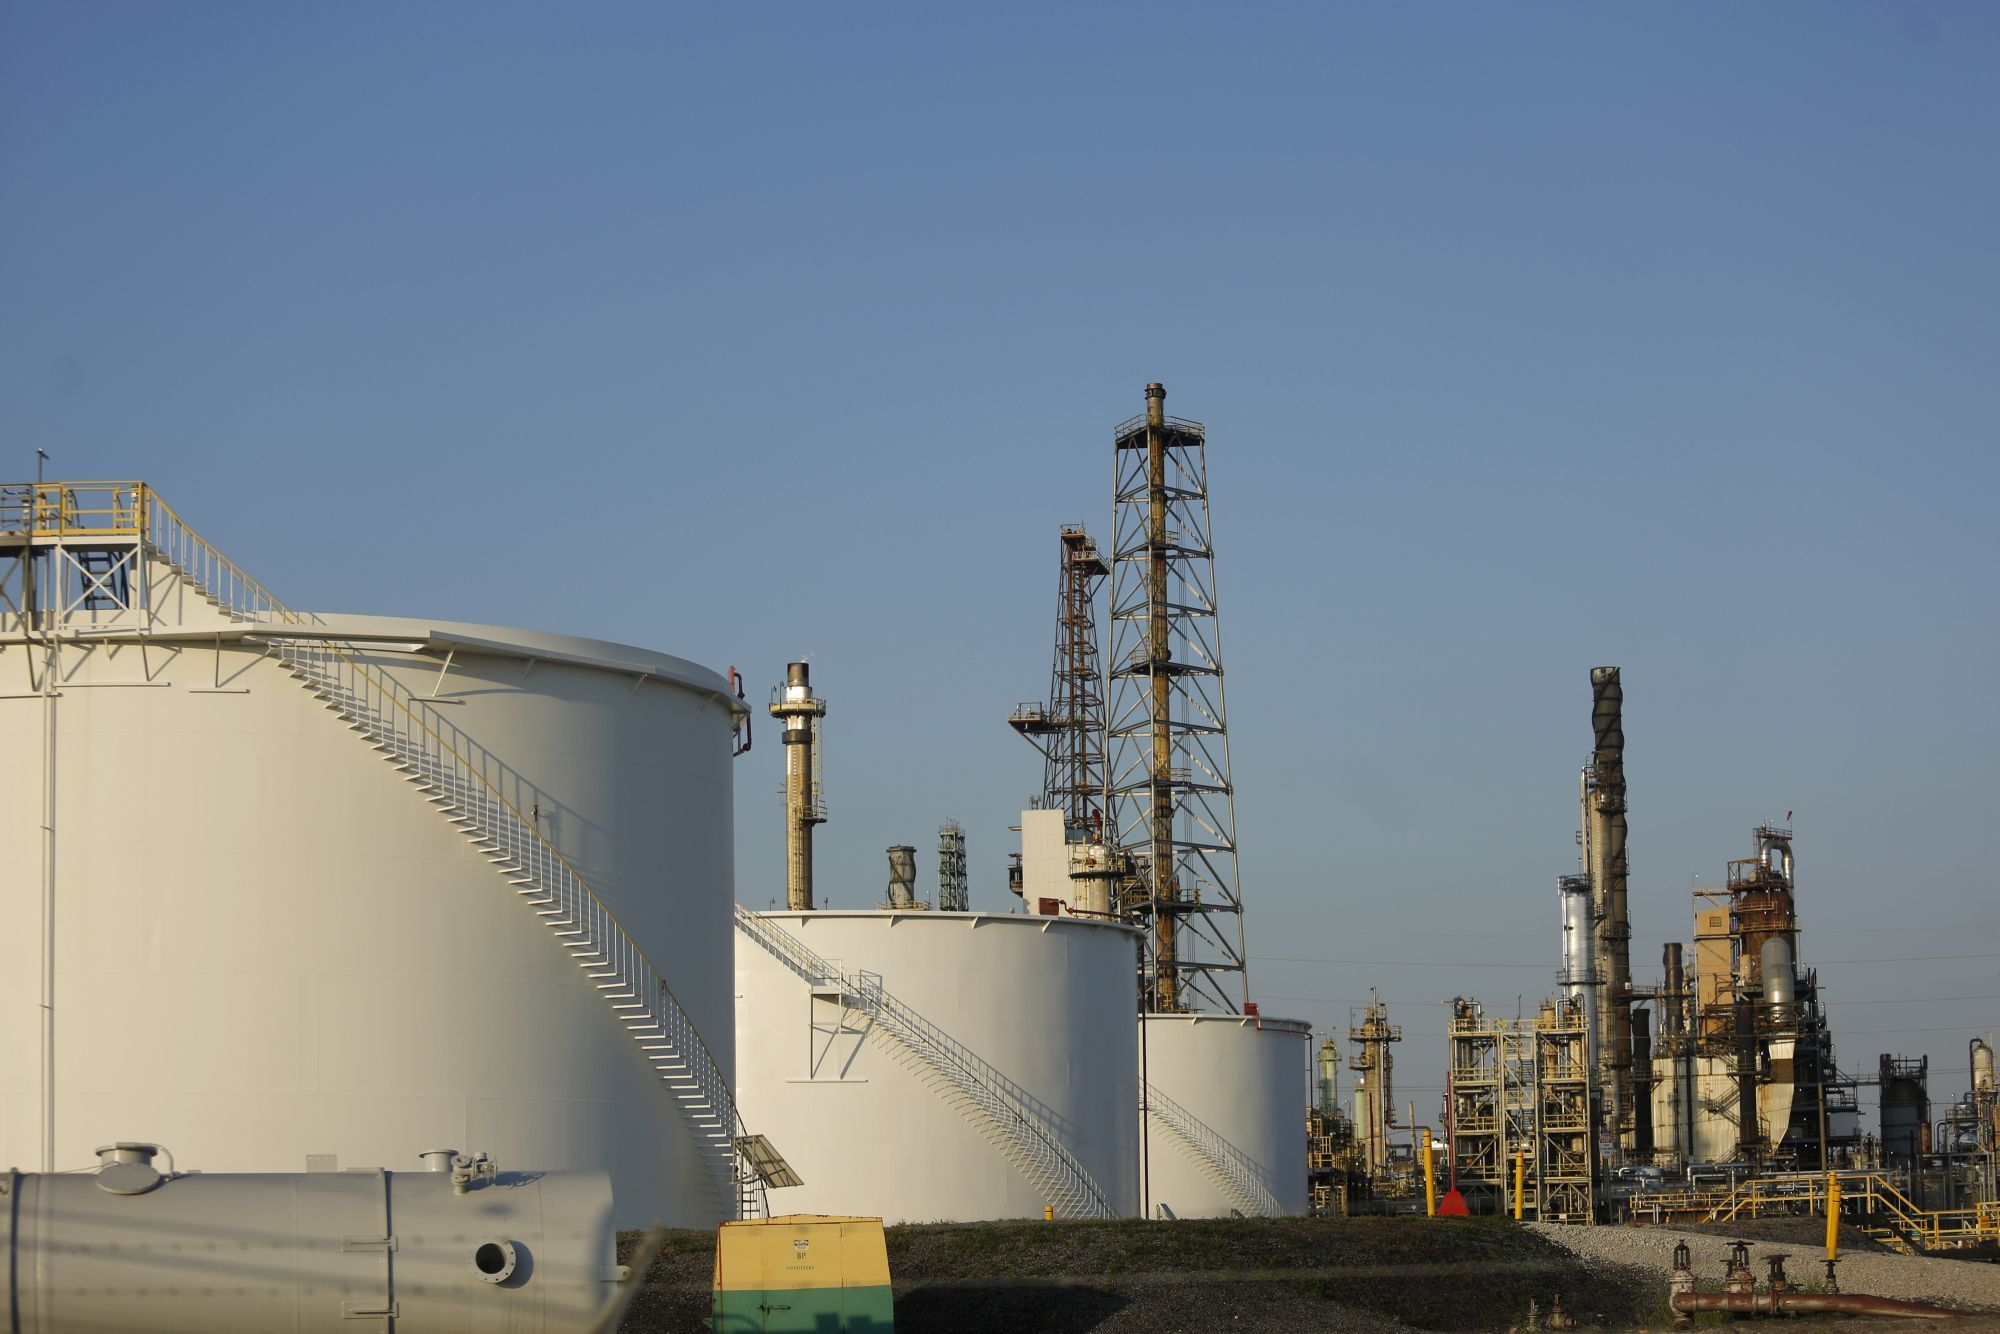 US Is Still Not Successful in Exporting Net Crude Oil